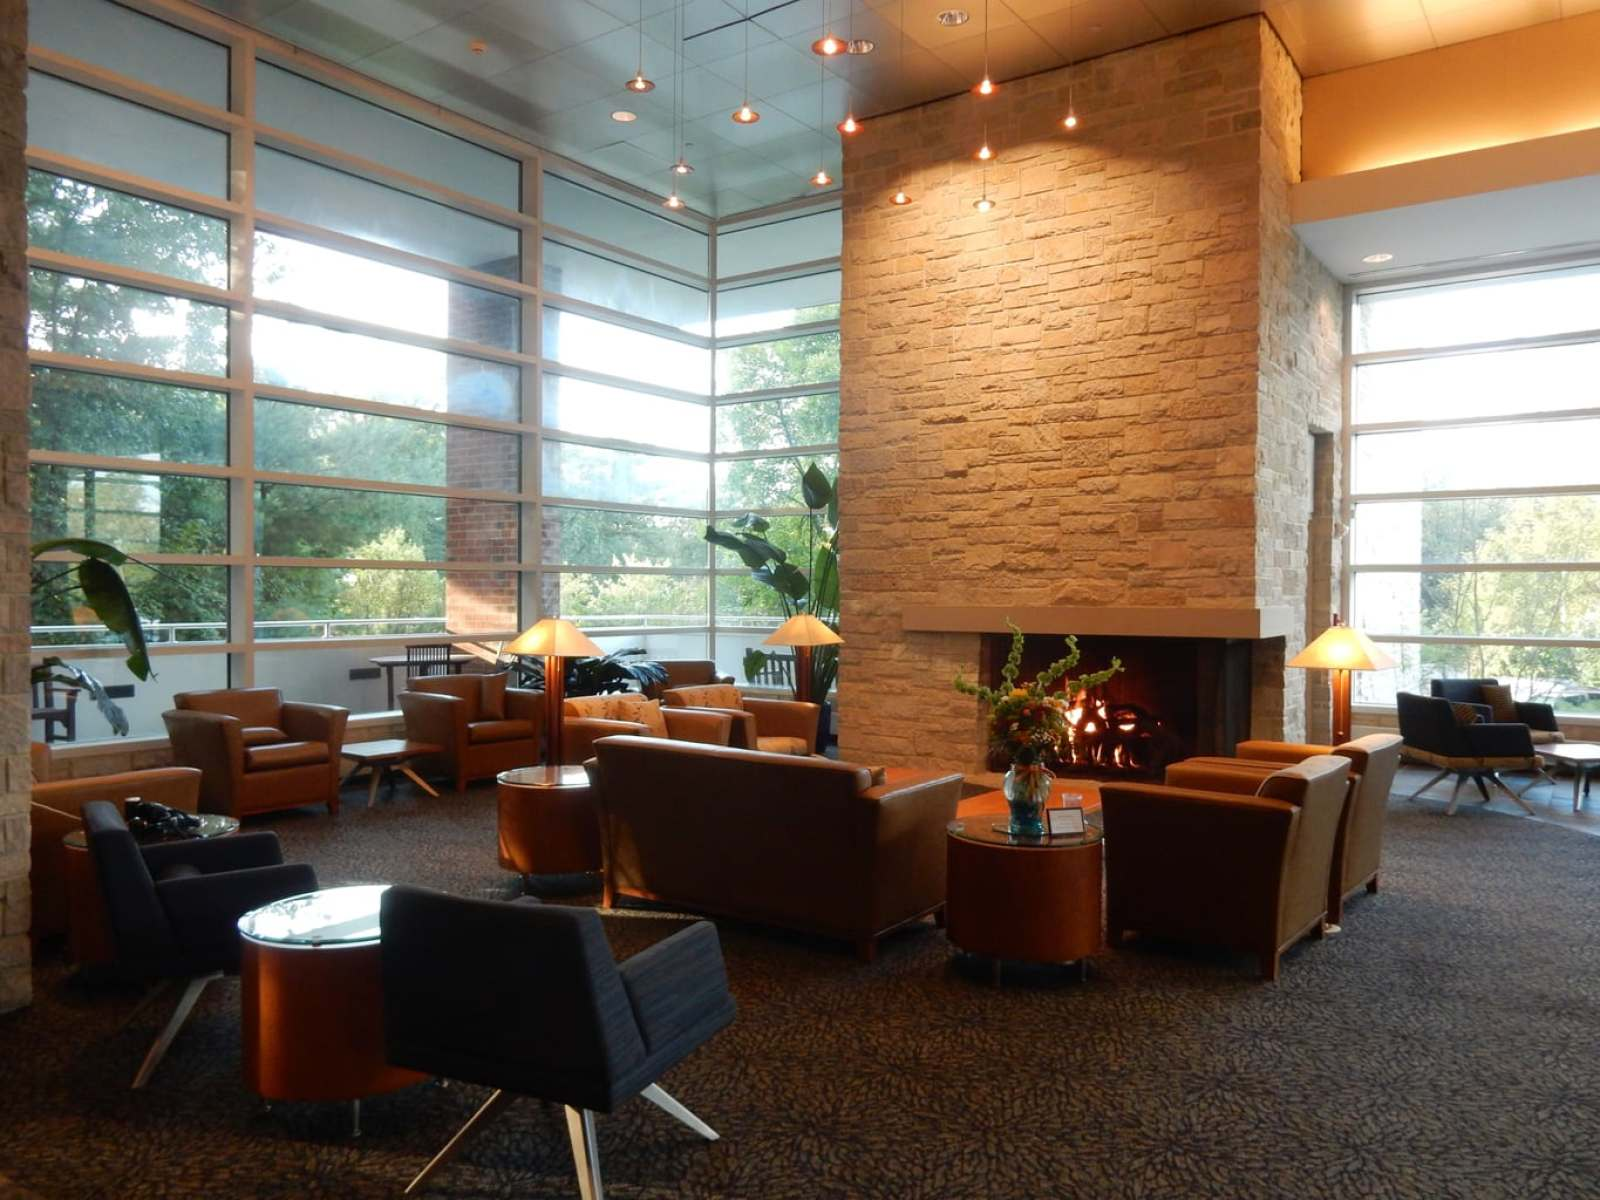 Lobby Penn Stater Hotel - State College PA